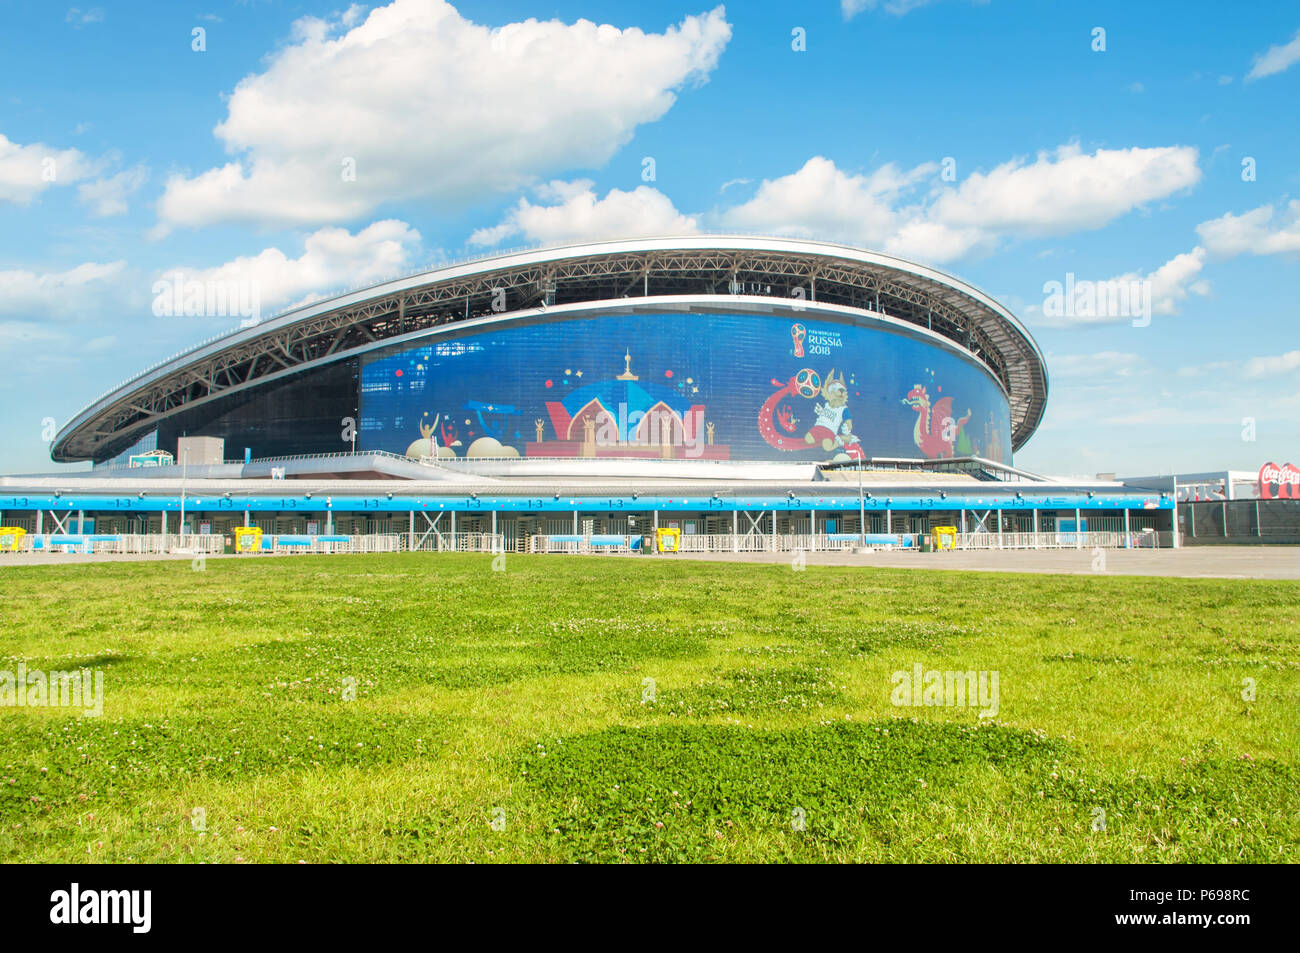 KAZAN, RUSSIA - 25 JUNE, 2018: Kazan Arena stadium with green grass in foreground and FIFA 2018 symbol Zabivaka on big screen. Stock Photo